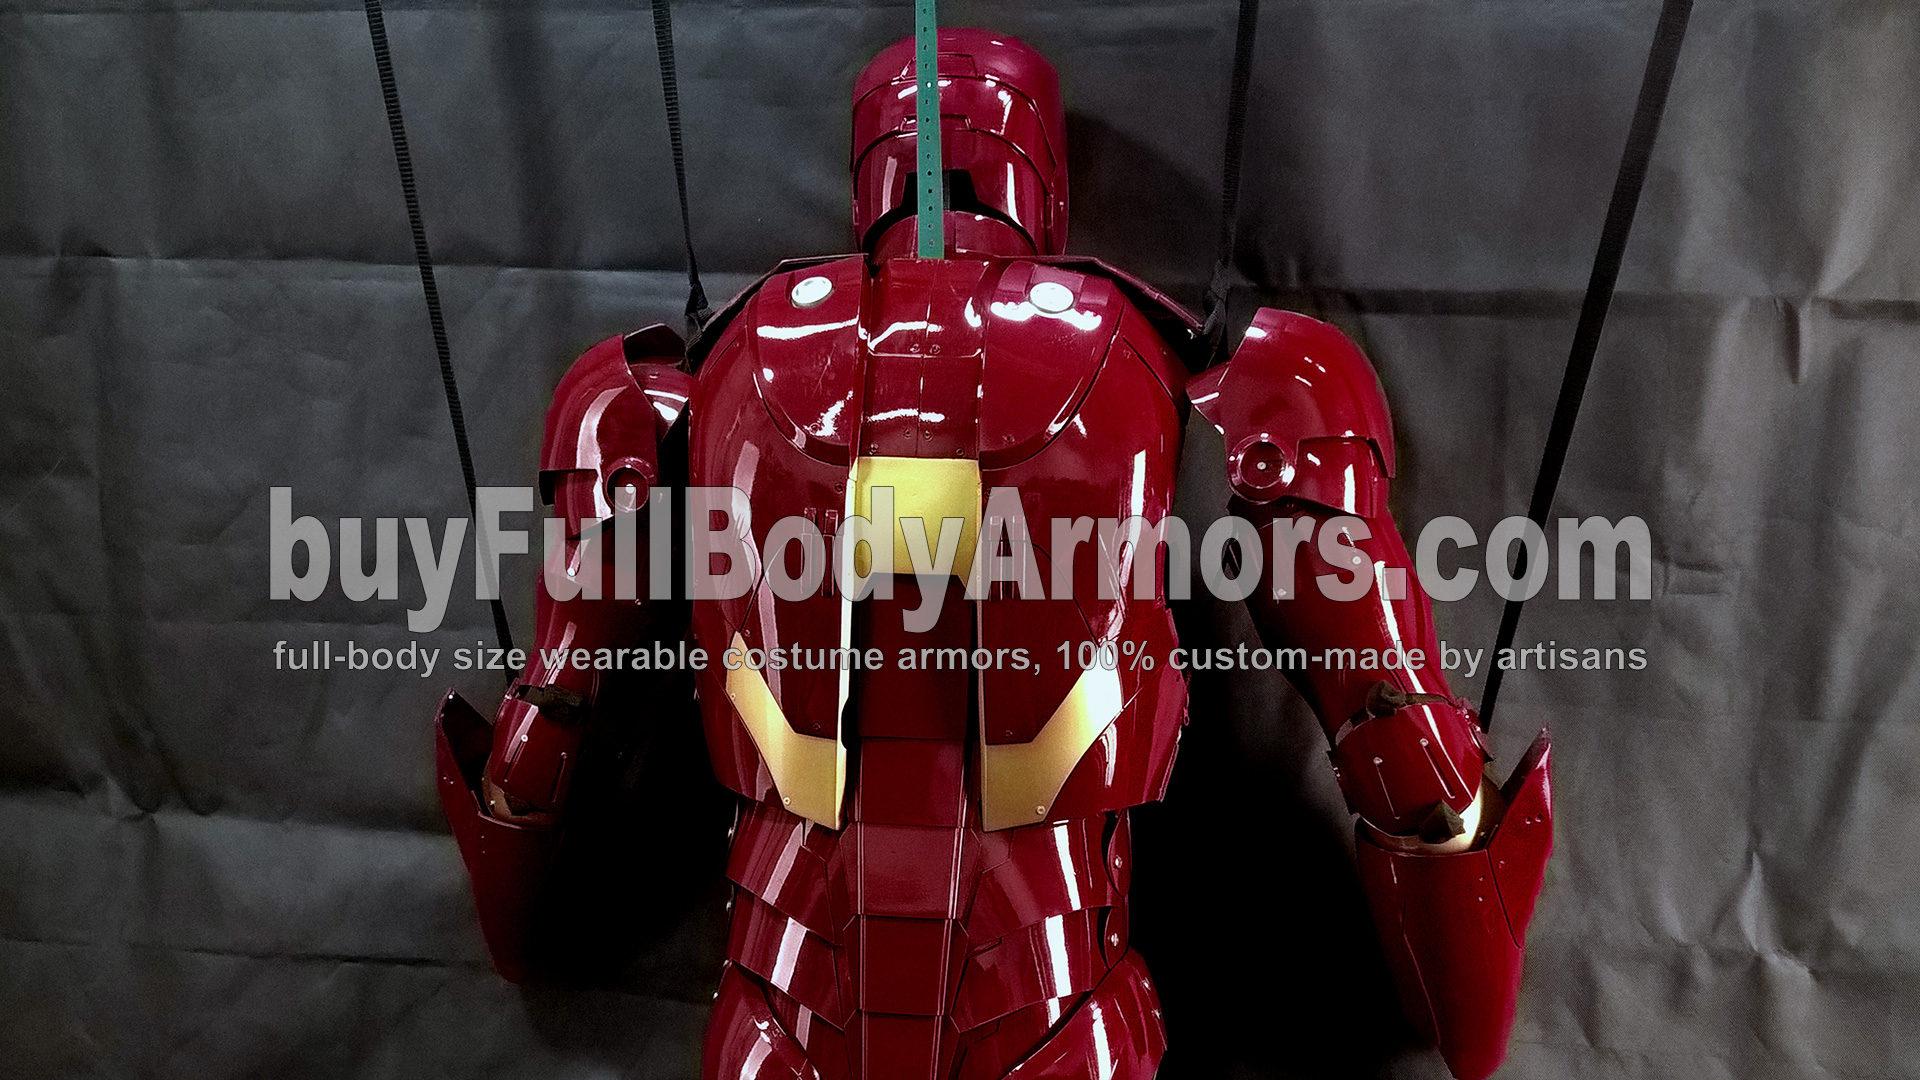 The Wearable Iron Man Suit Mark 3 III Armor Costume - Top Half Prototype 6